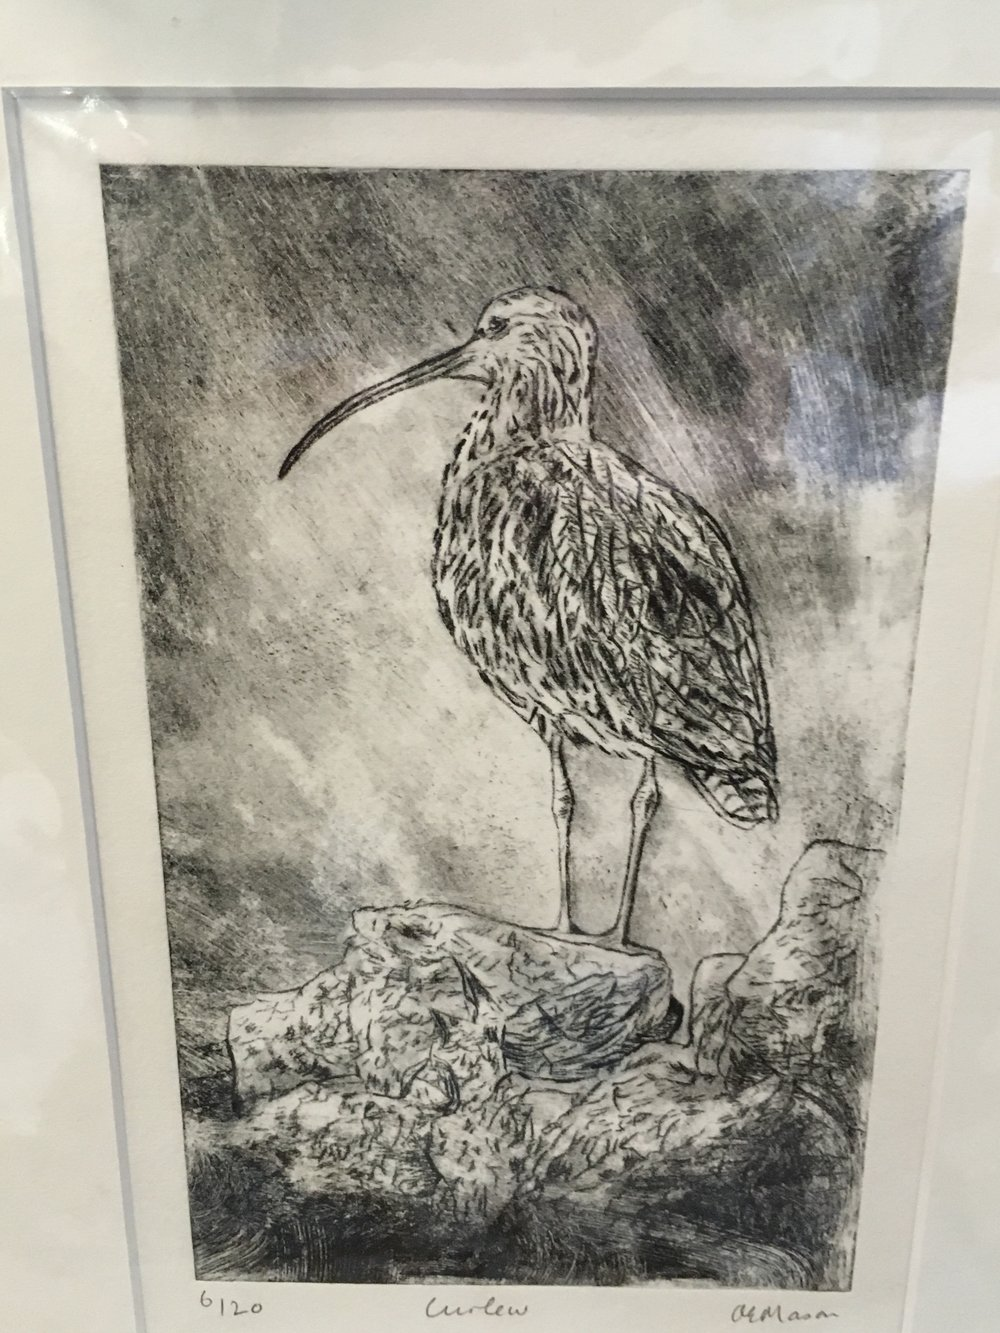 Engraving Curlew limited edition print 6/20 £42.00